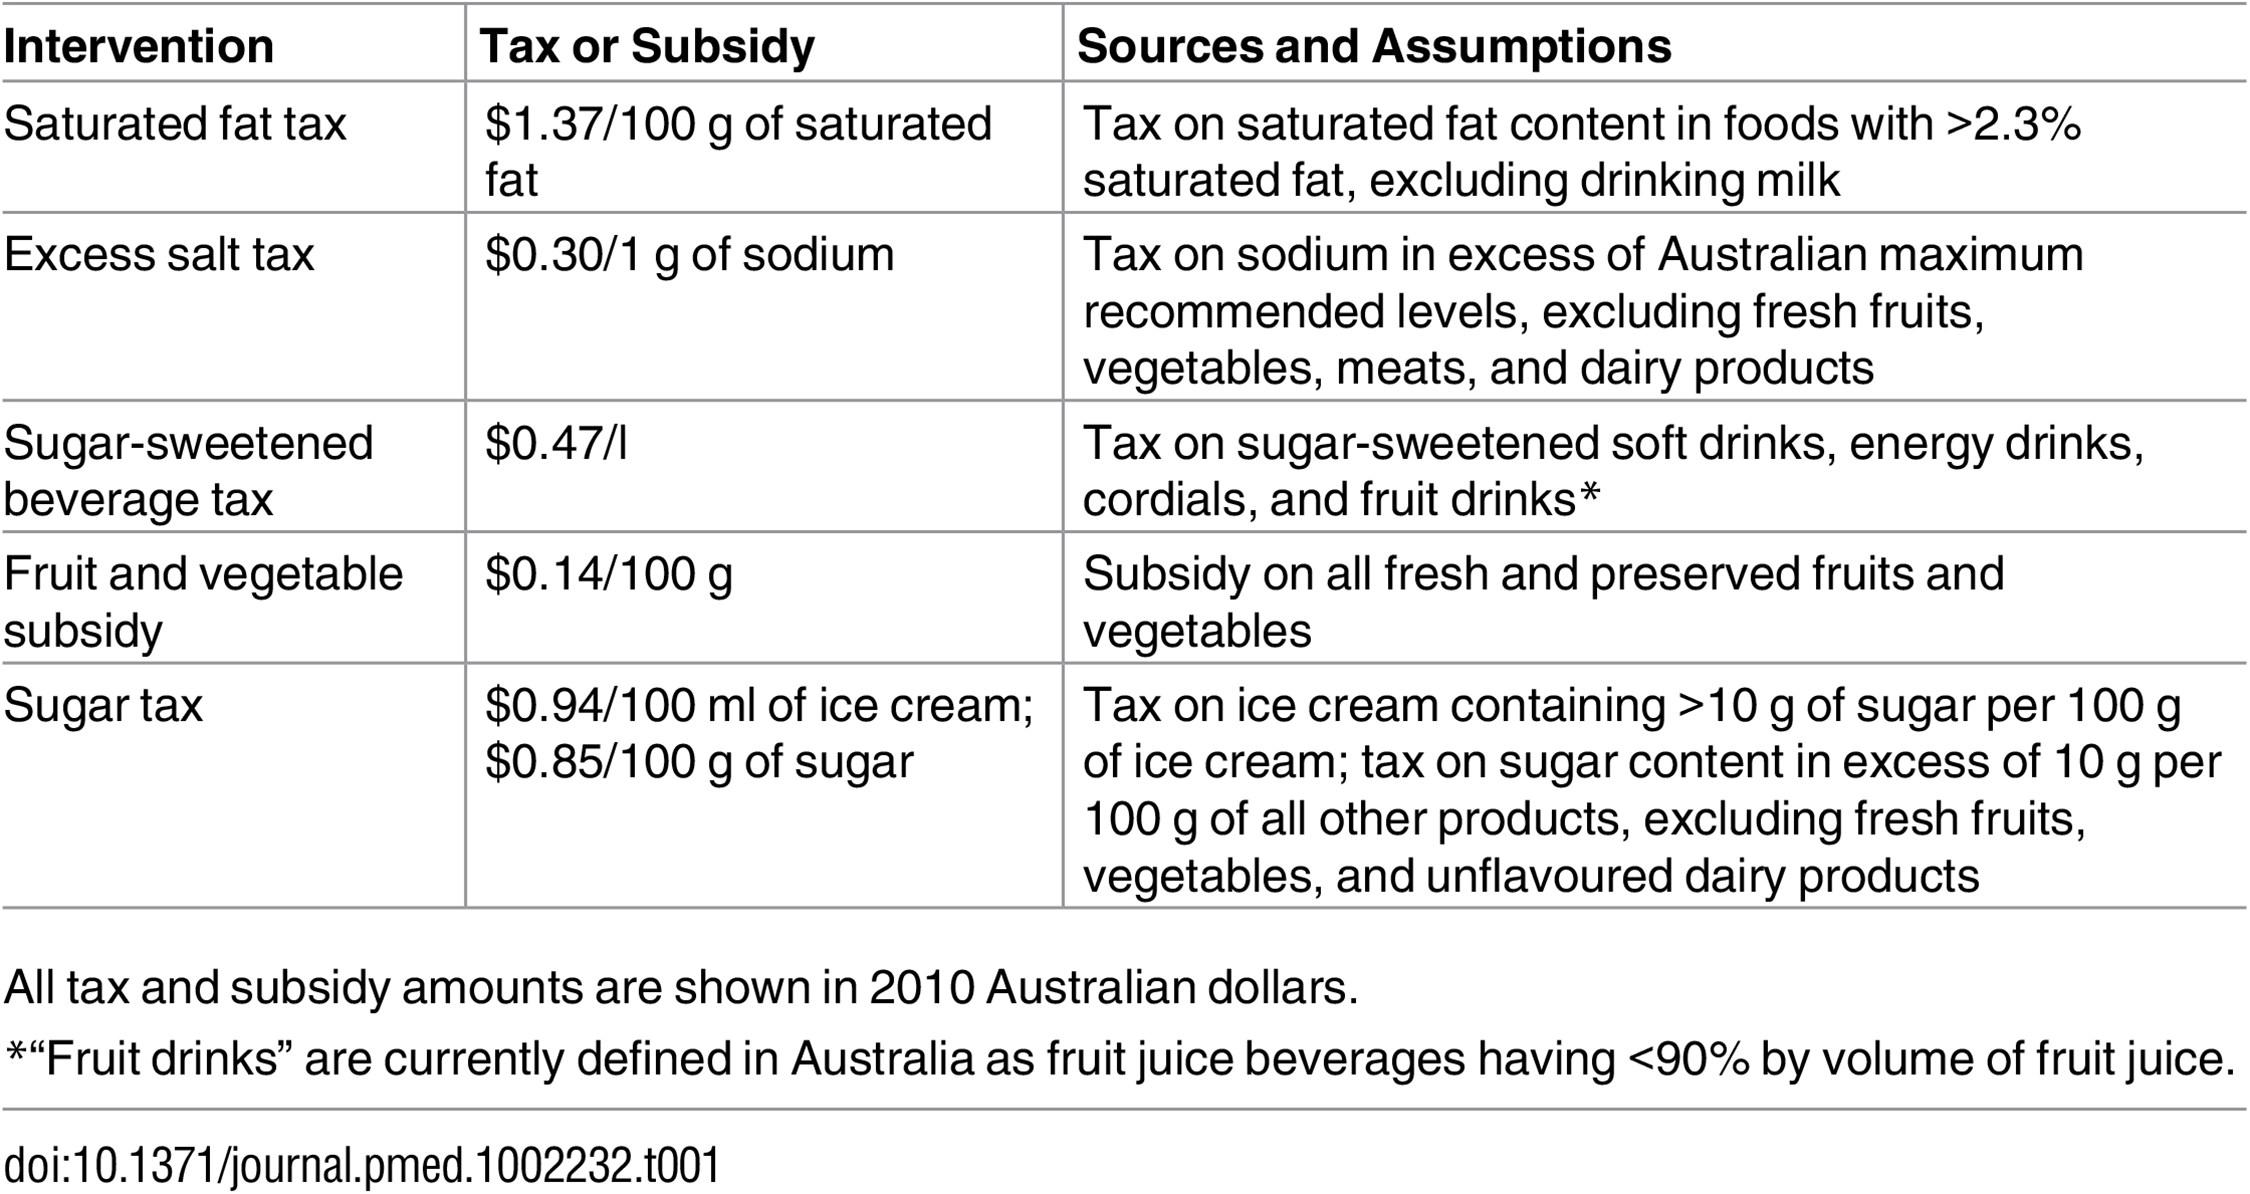 The food tax and subsidy interventions.